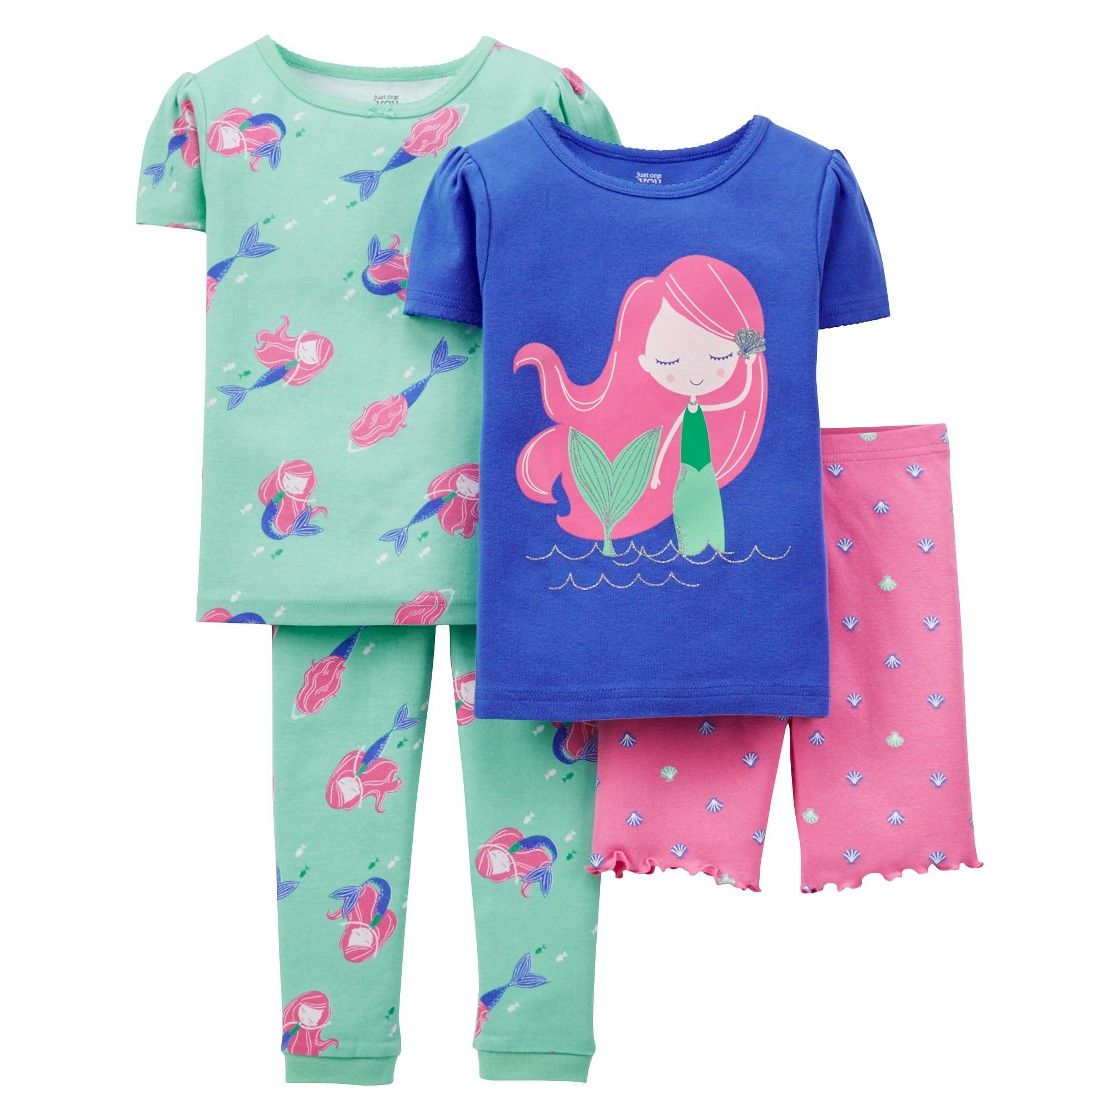 73b79d8dd7 Just One You  Made by Carter s  Toddler Girls  Mermaid Pajamas ...